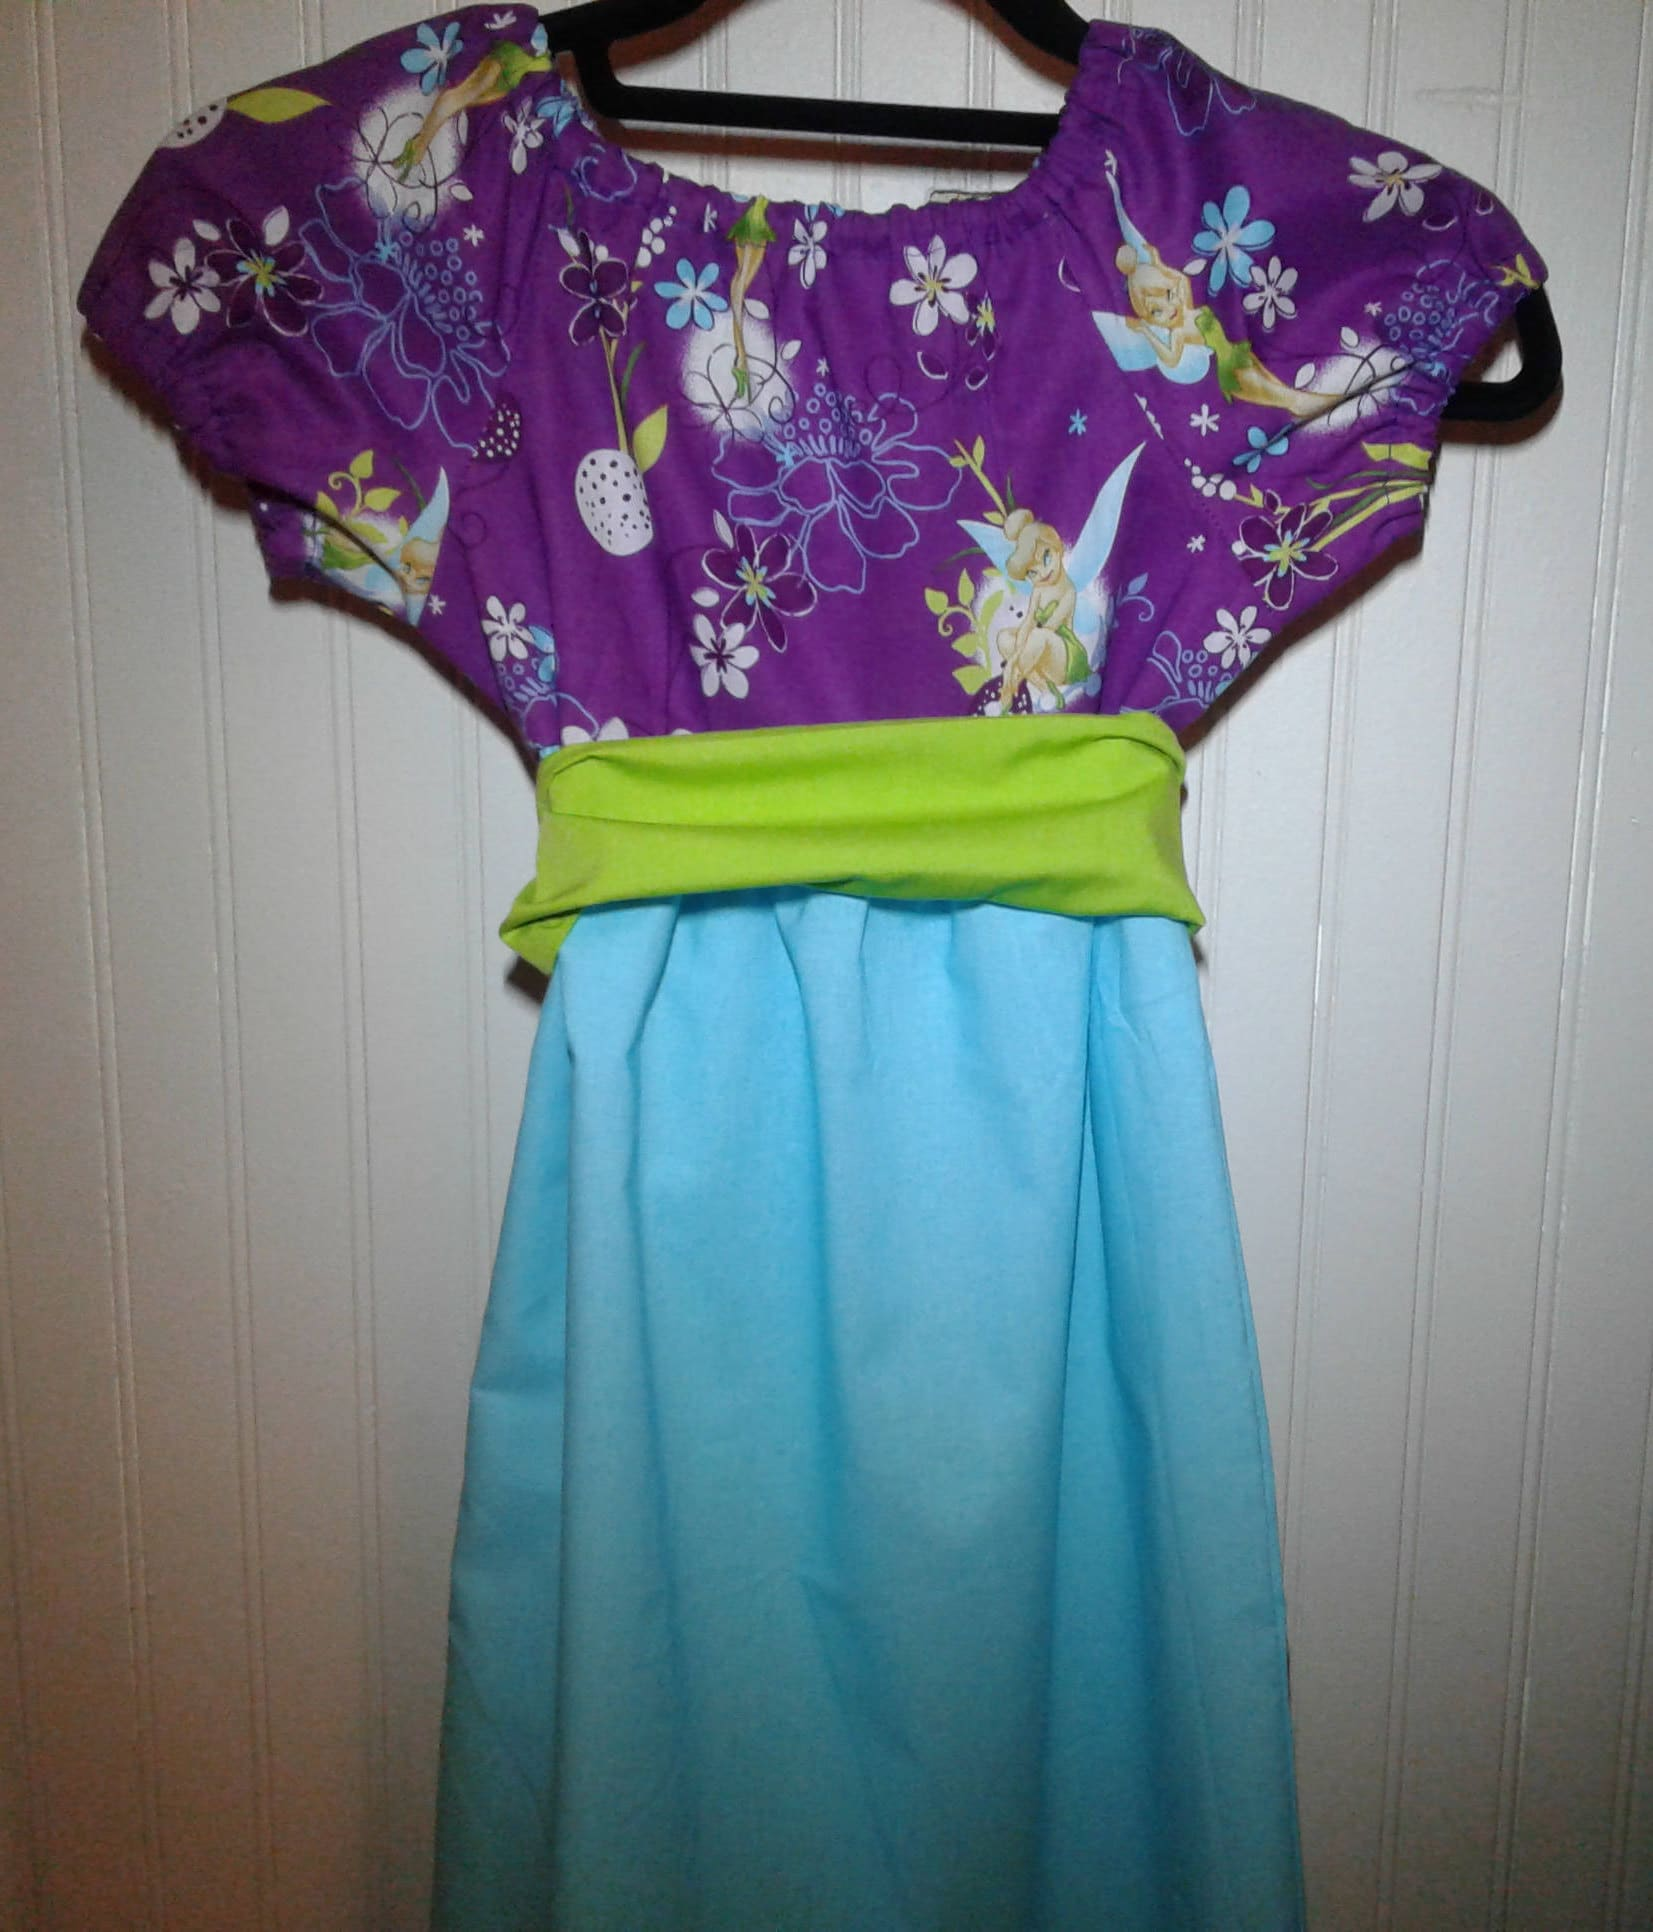 Tinkerbell dress Tinkerbell costume Tinkerbell dress Size 5/6